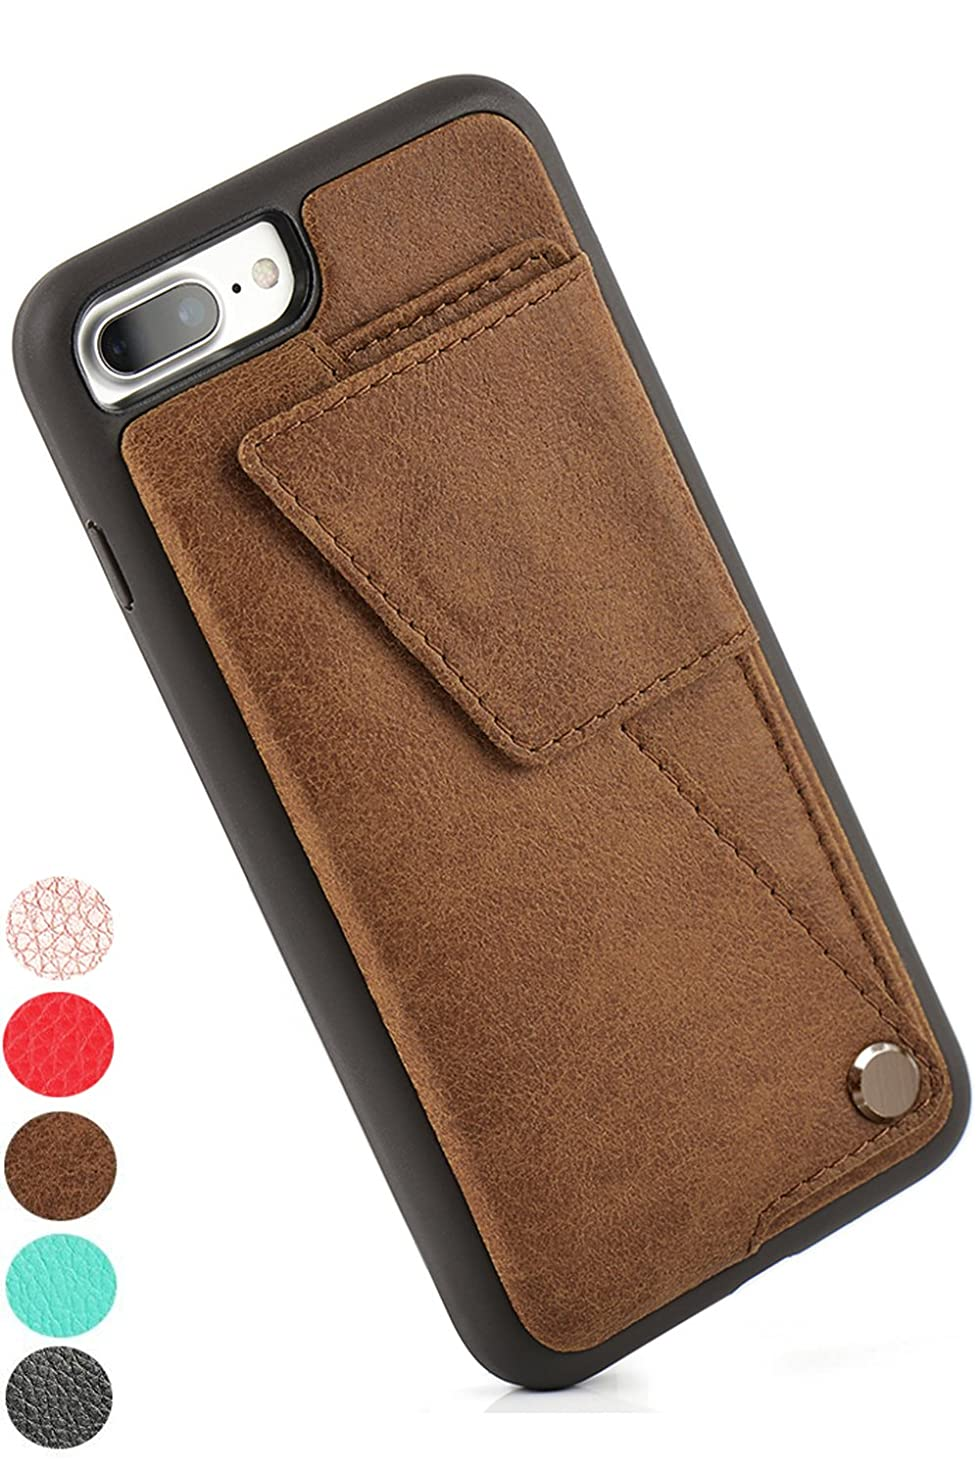 iPhone 7 Plus Wallet Case, ZVEdeng iPhone 8 Plus Wallet Case with Card Holder, iPhone 8 Plus Card Case, iPhone 7 Plus Credit Card Case, Leather Protective Cover Case for Men Women - Brown